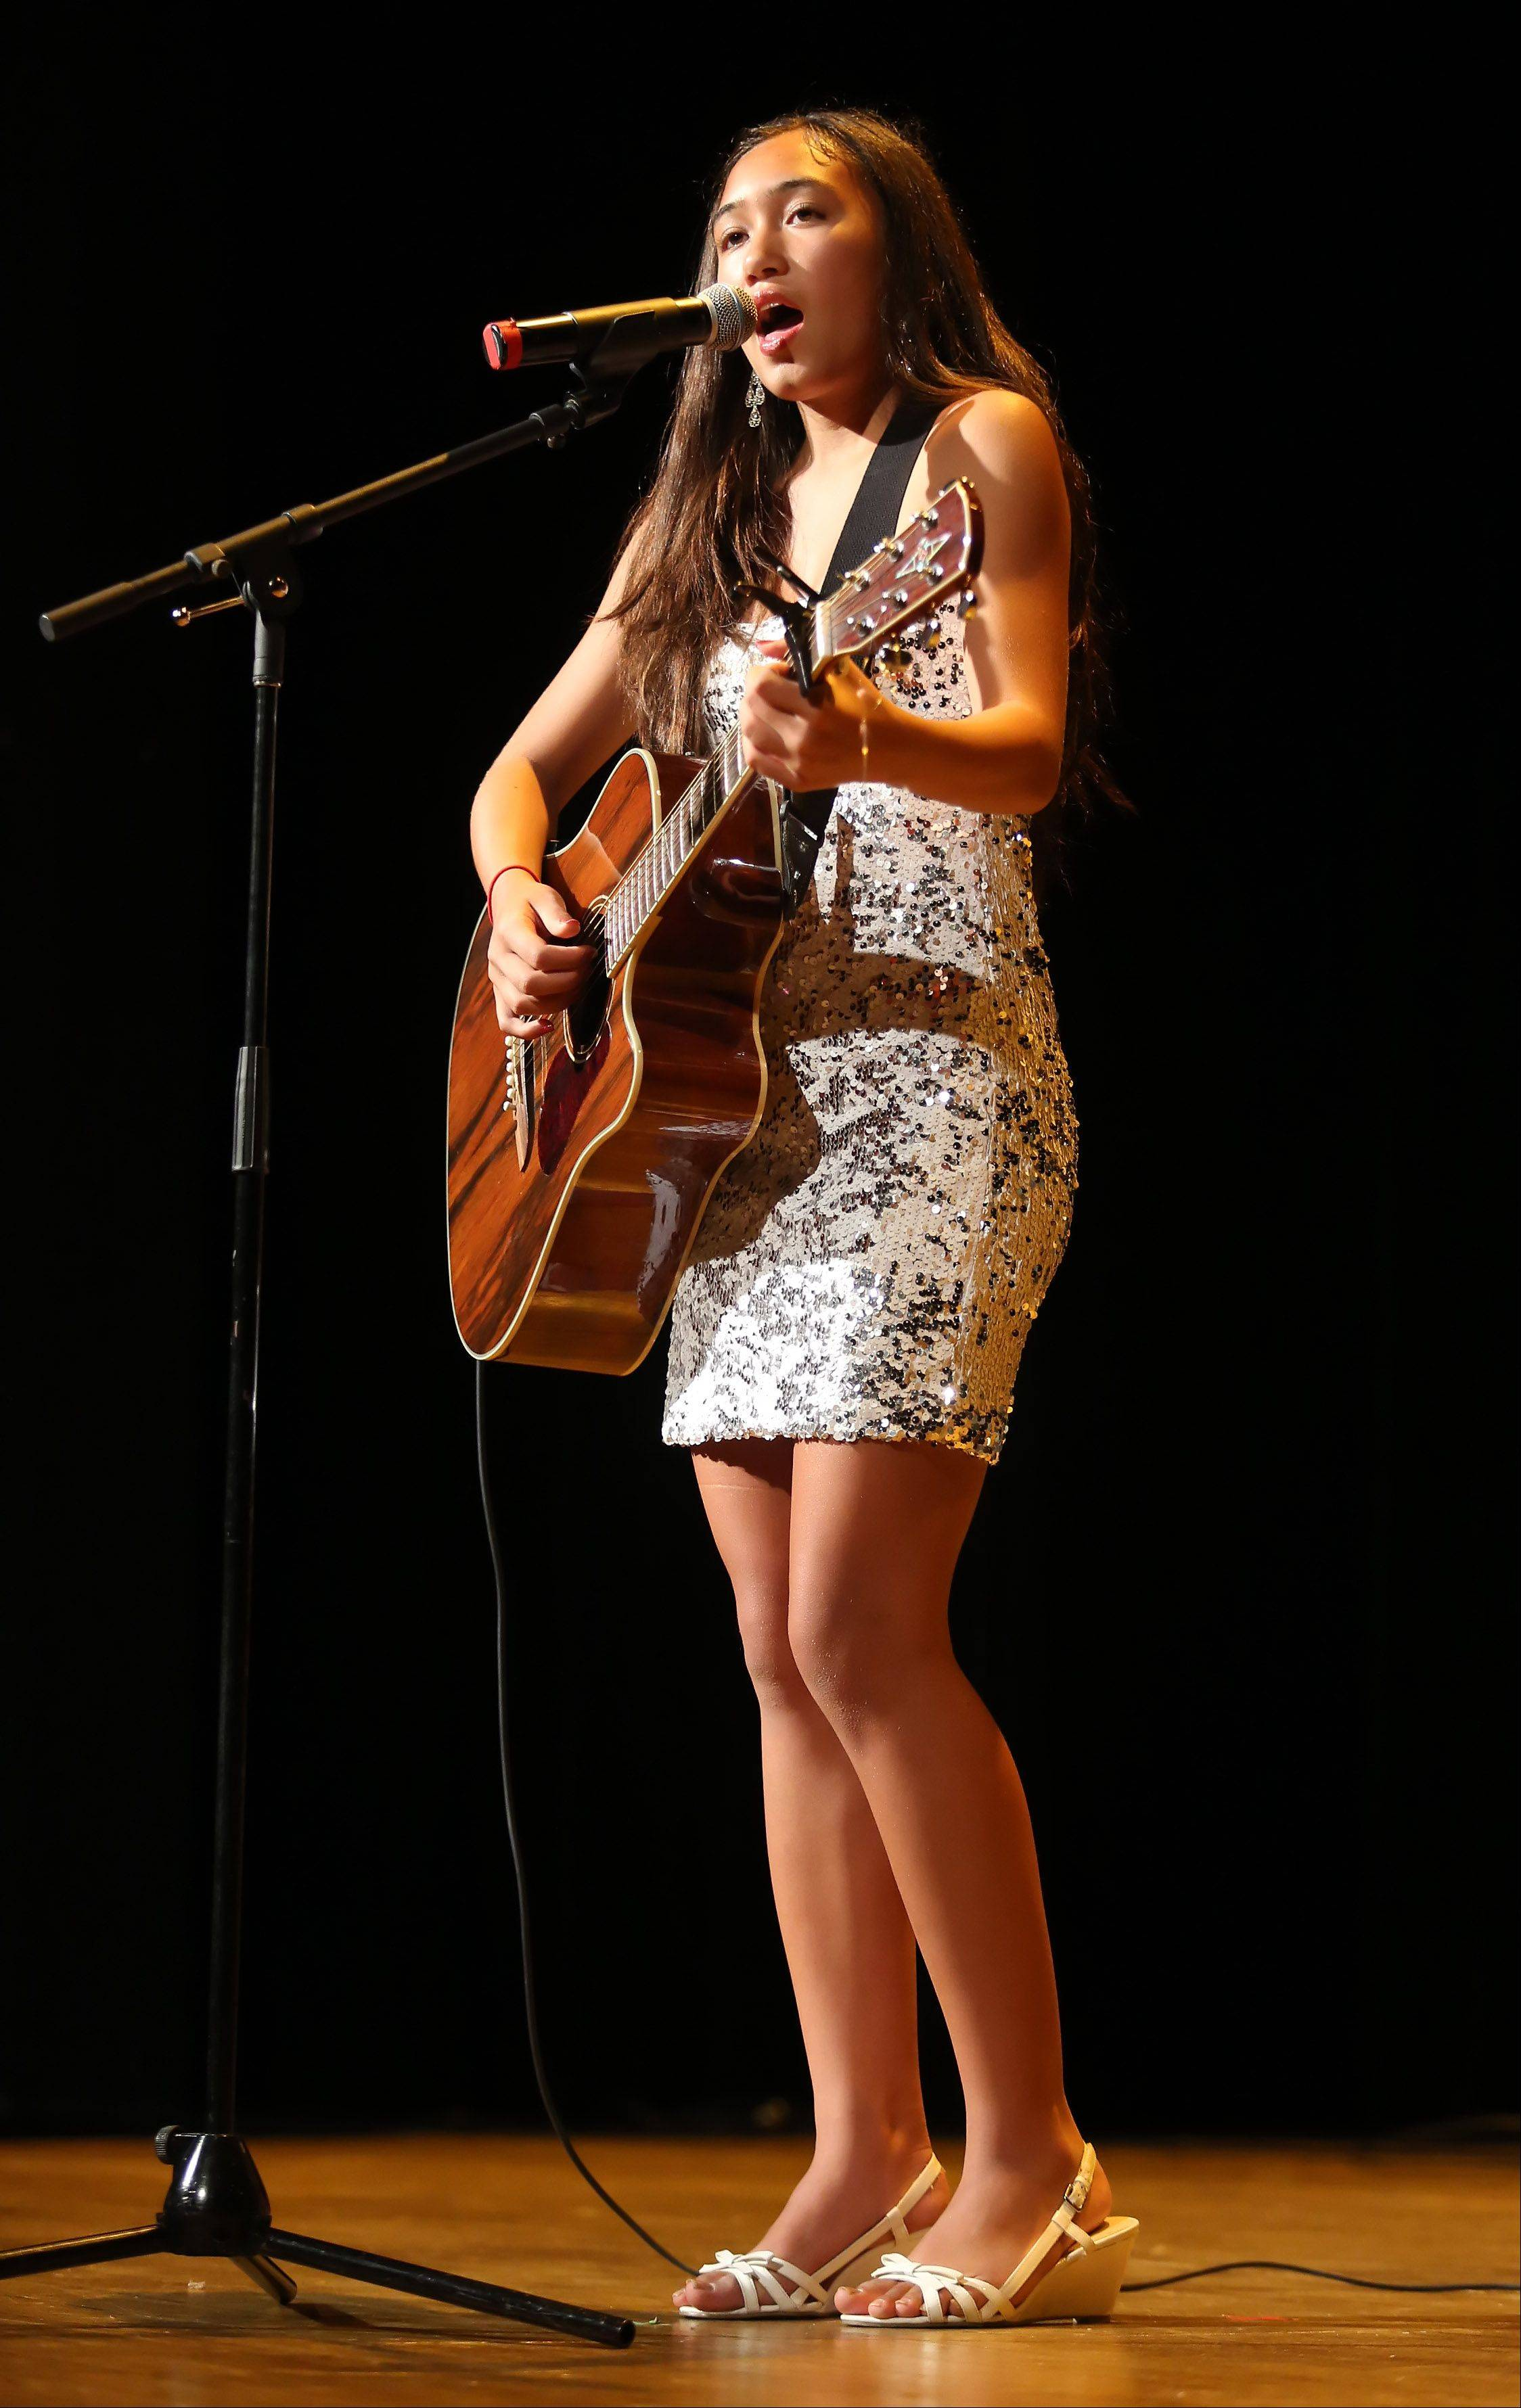 Alexis Mai Nguyen of Pingree Grove plays guitar Sunday during the second round of performances by finalists of the Suburban Chicago's Got Talent competition at the Metropolis Performing Arts Centre in Arlington Heights. The summer long talent contest is presented by the Daily Herald and sponsored by the Arlington Heights Chamber of Commerce.